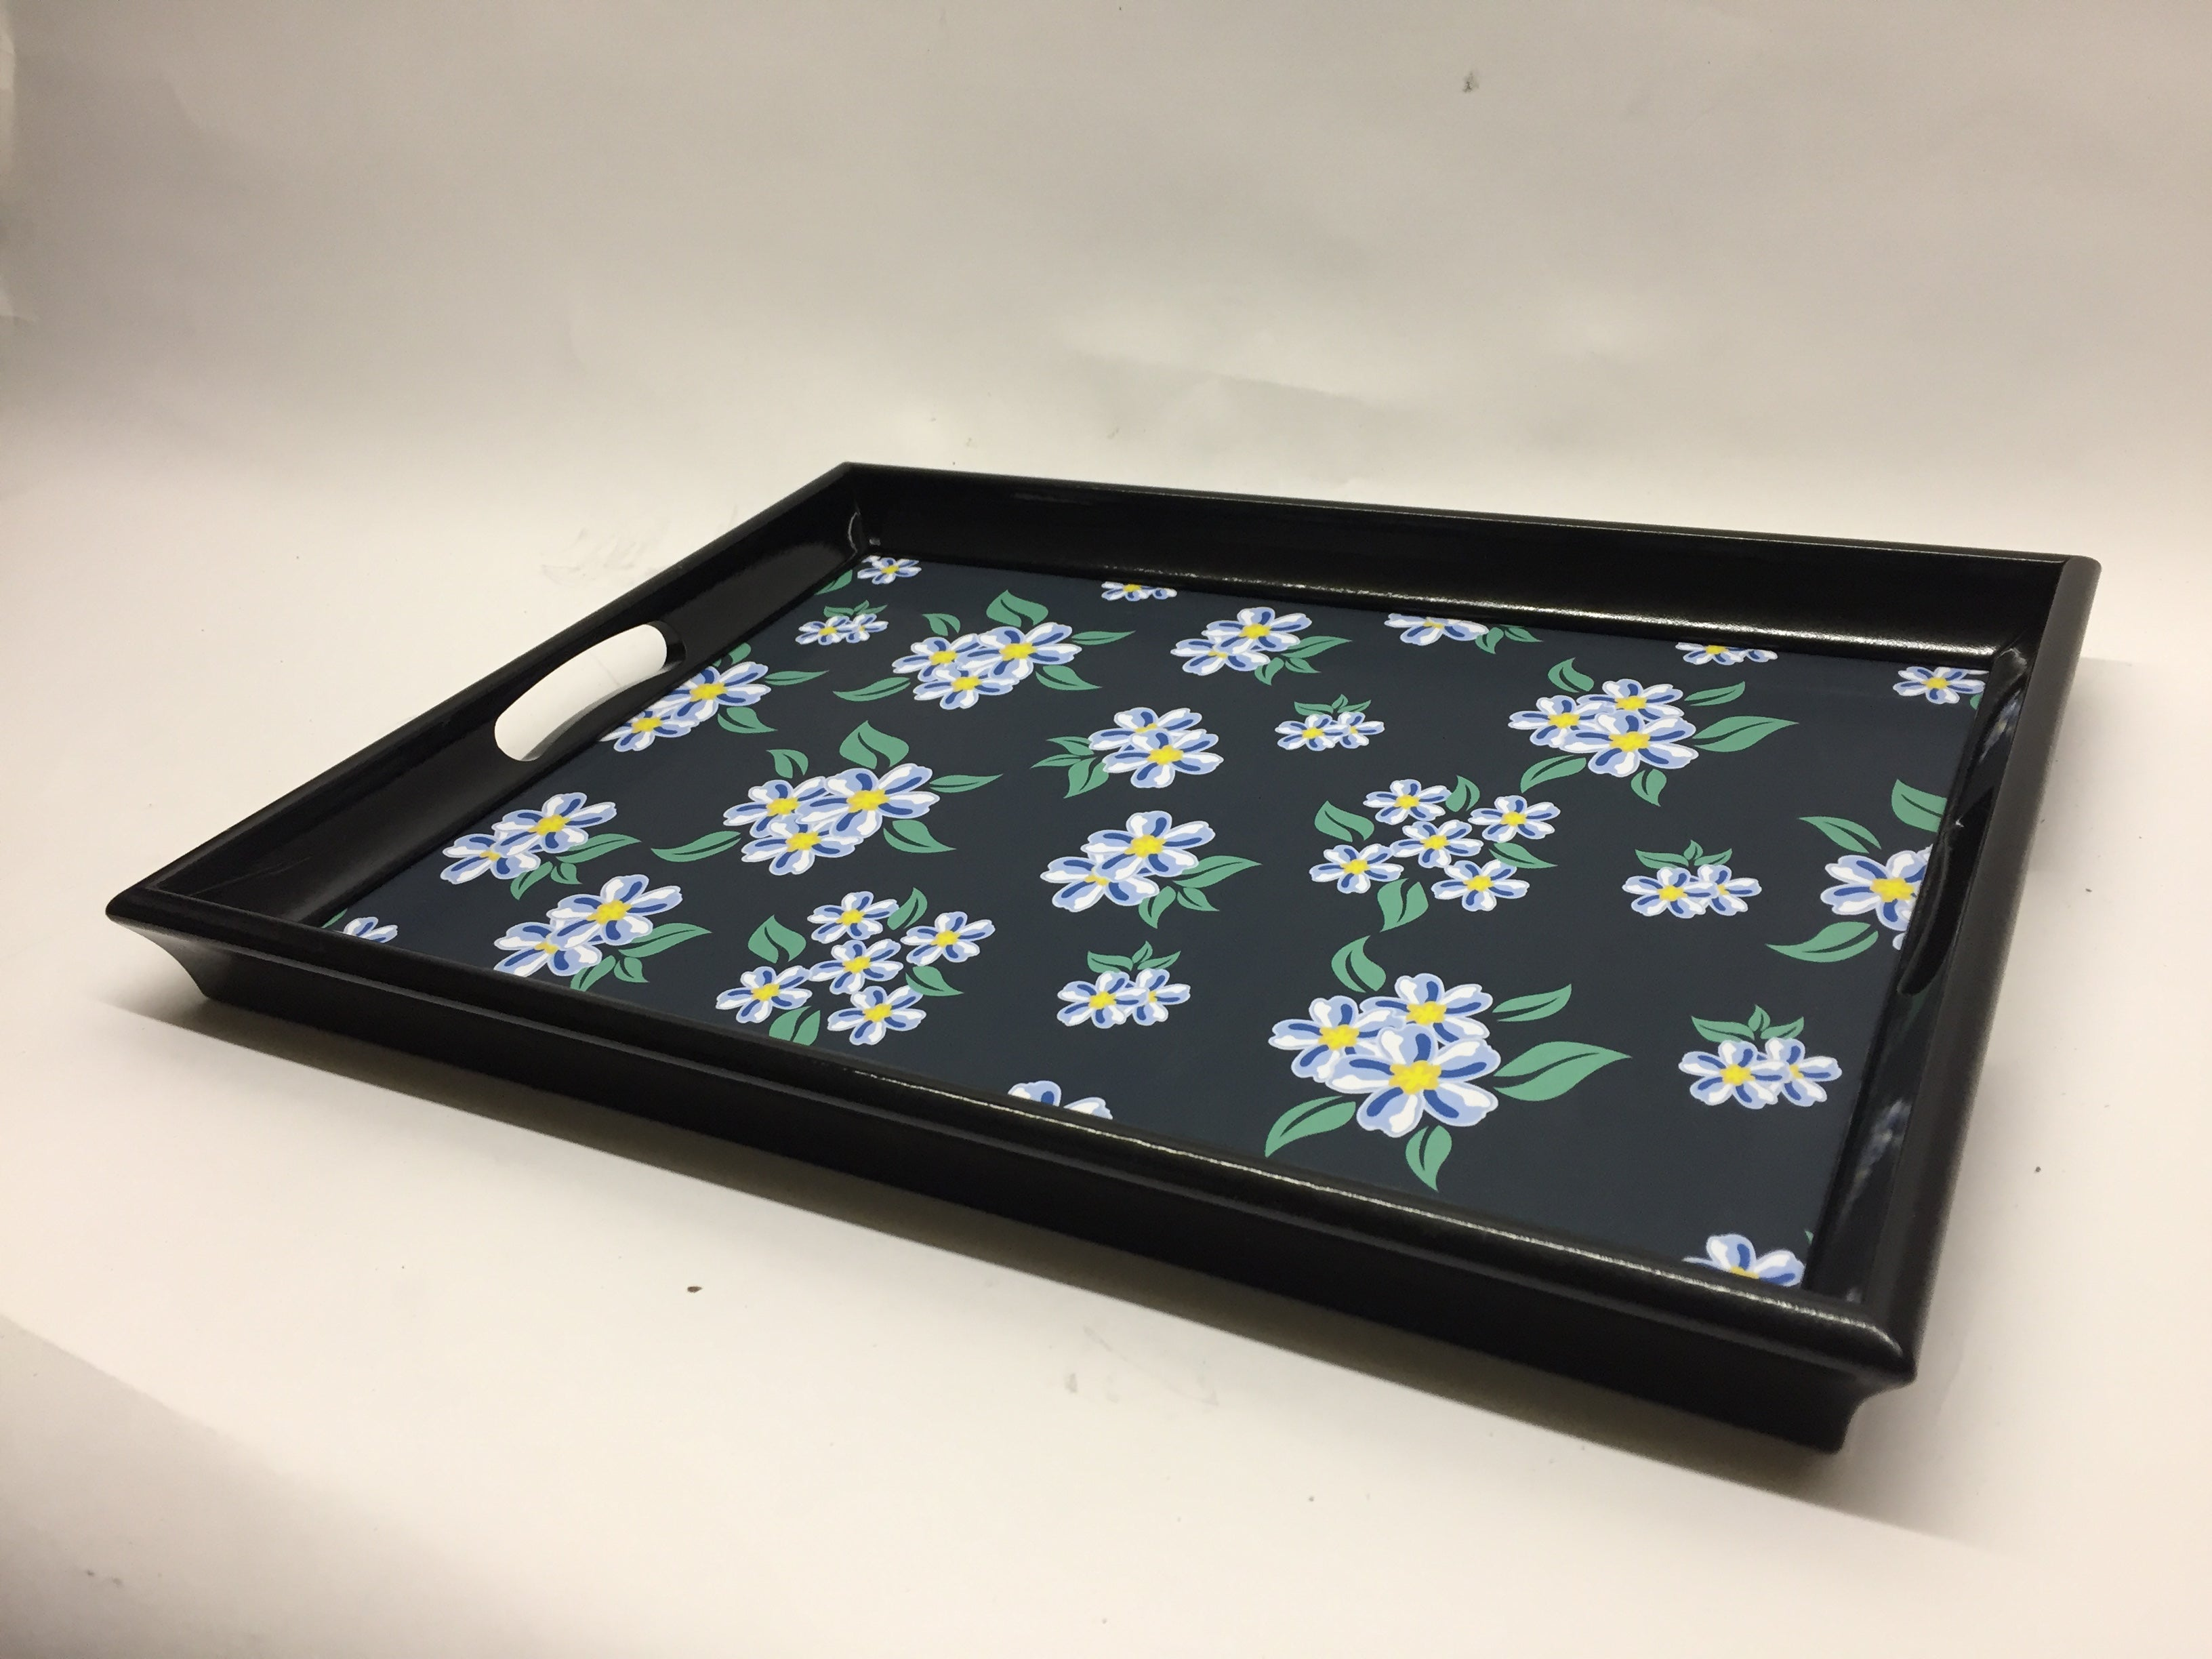 White Flower Melamine Based Serving Tray